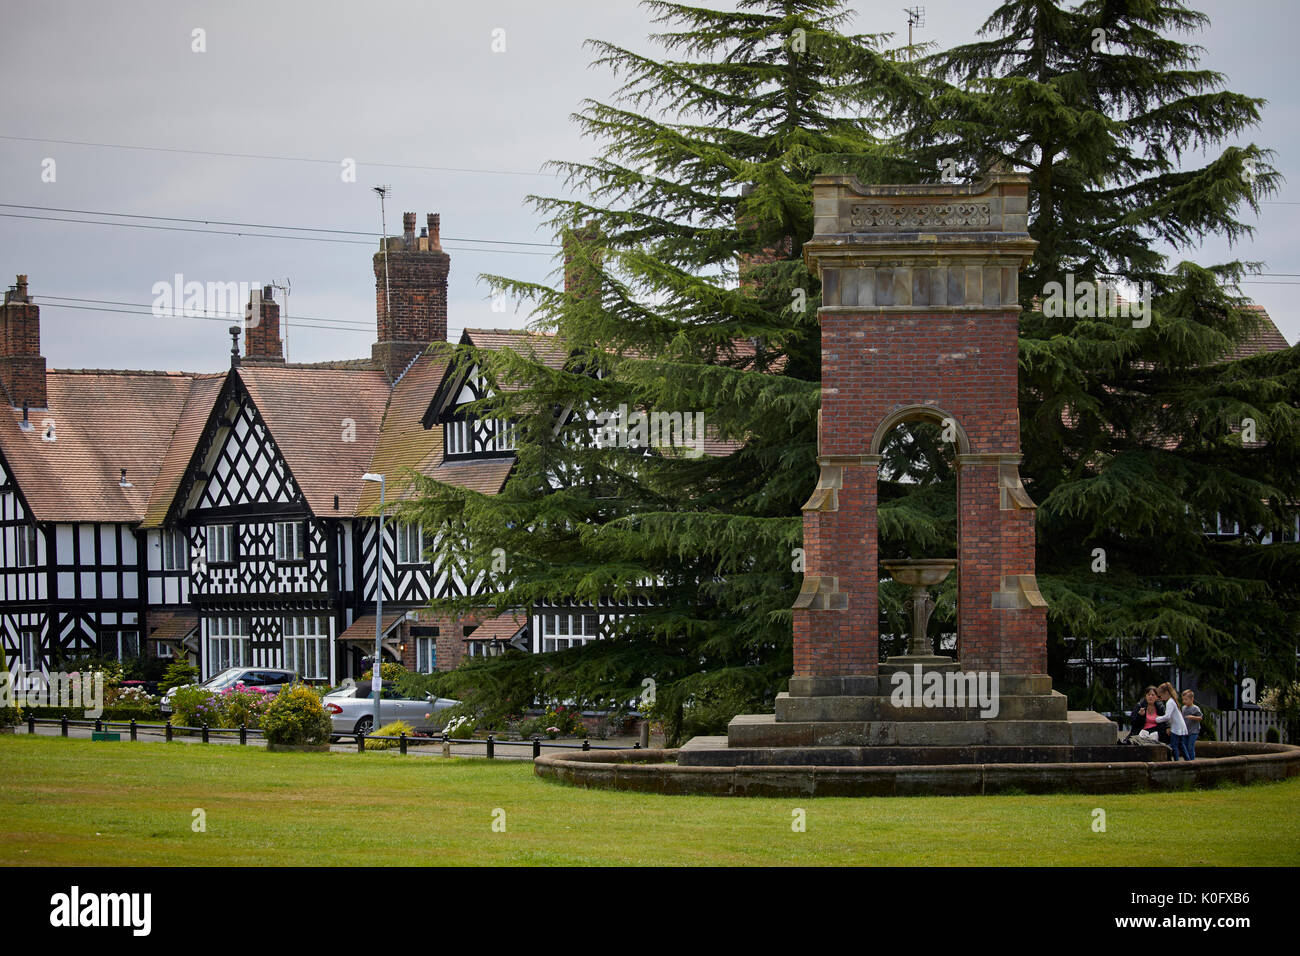 Salford's picturesque Worsley green in Manchester formerly Worsley Yard and industrial area, tudor houses and  monument to Francis, 3rd Duke of Bridge - Stock Image